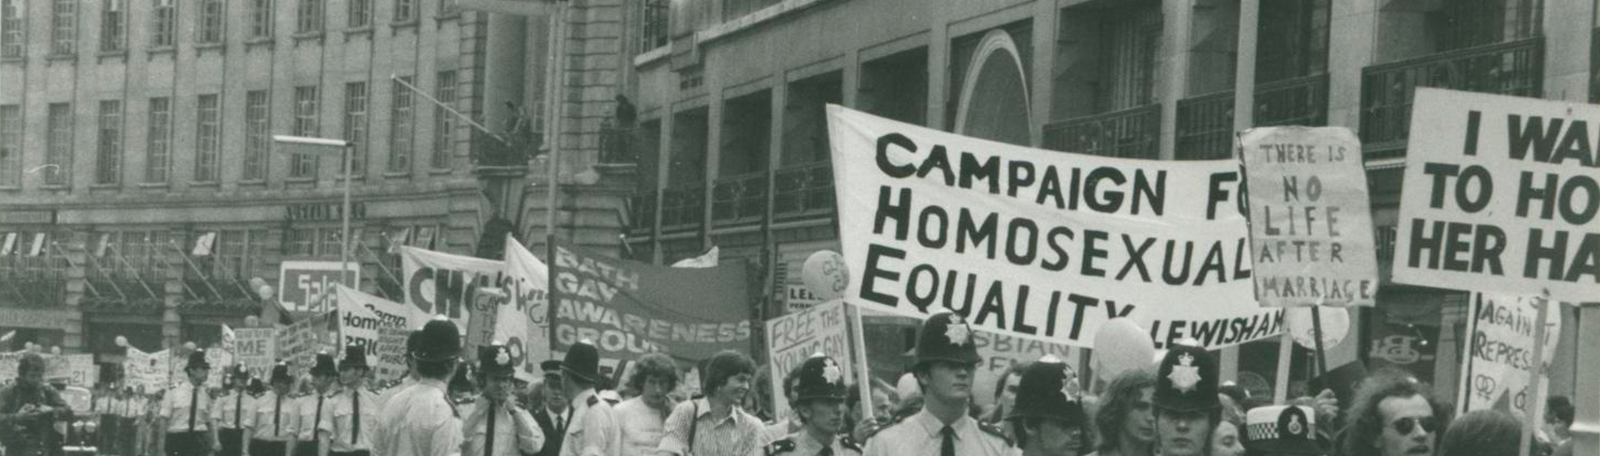 Criminalisation homosexuality uk